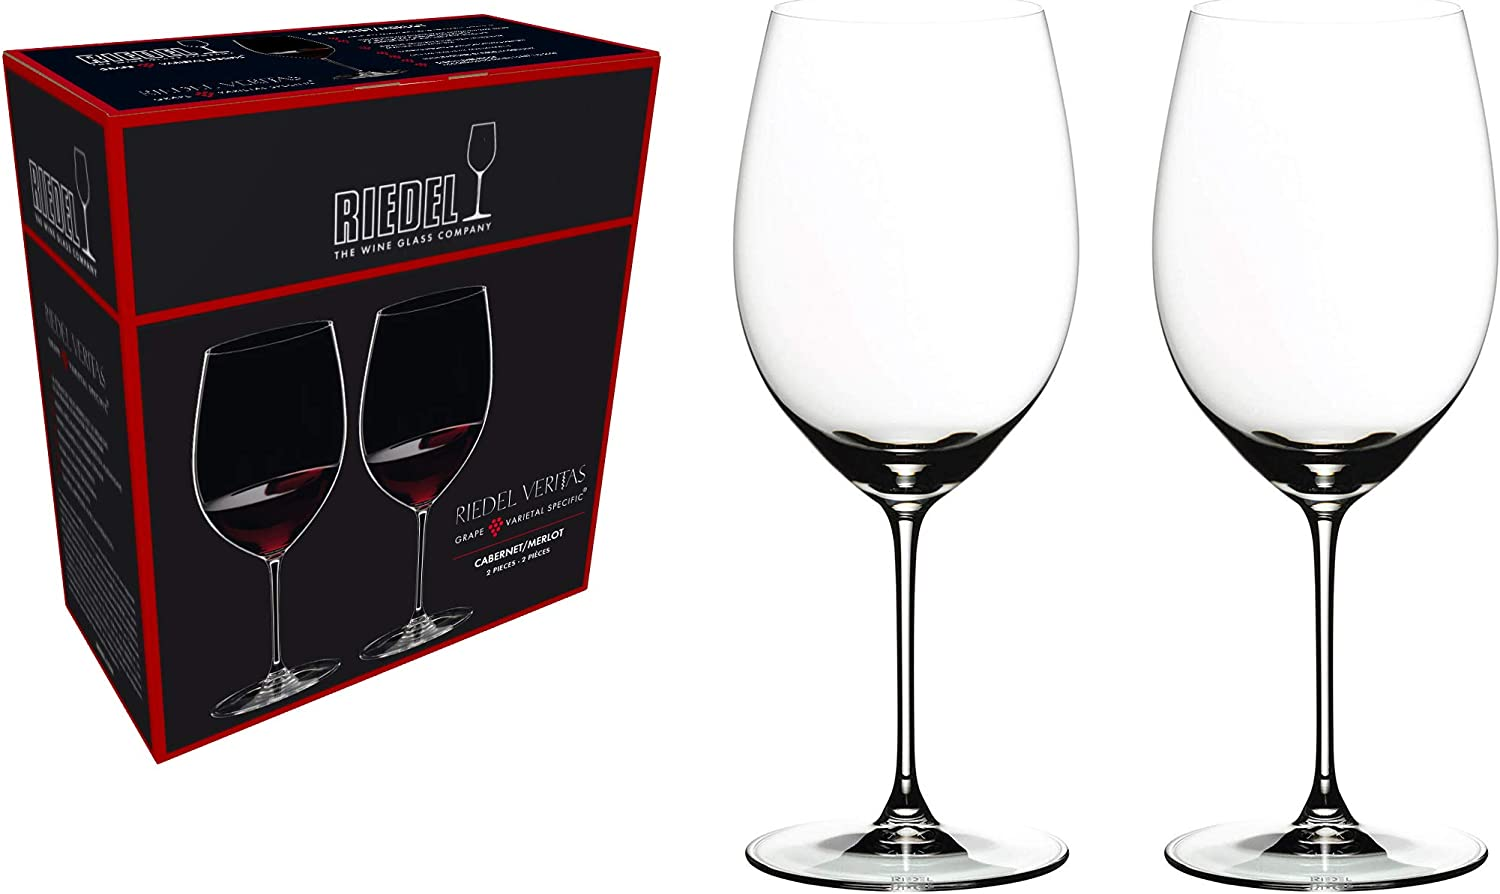 Riedel® Veritas CabernetMerlot Wine Glasses (Set of 2